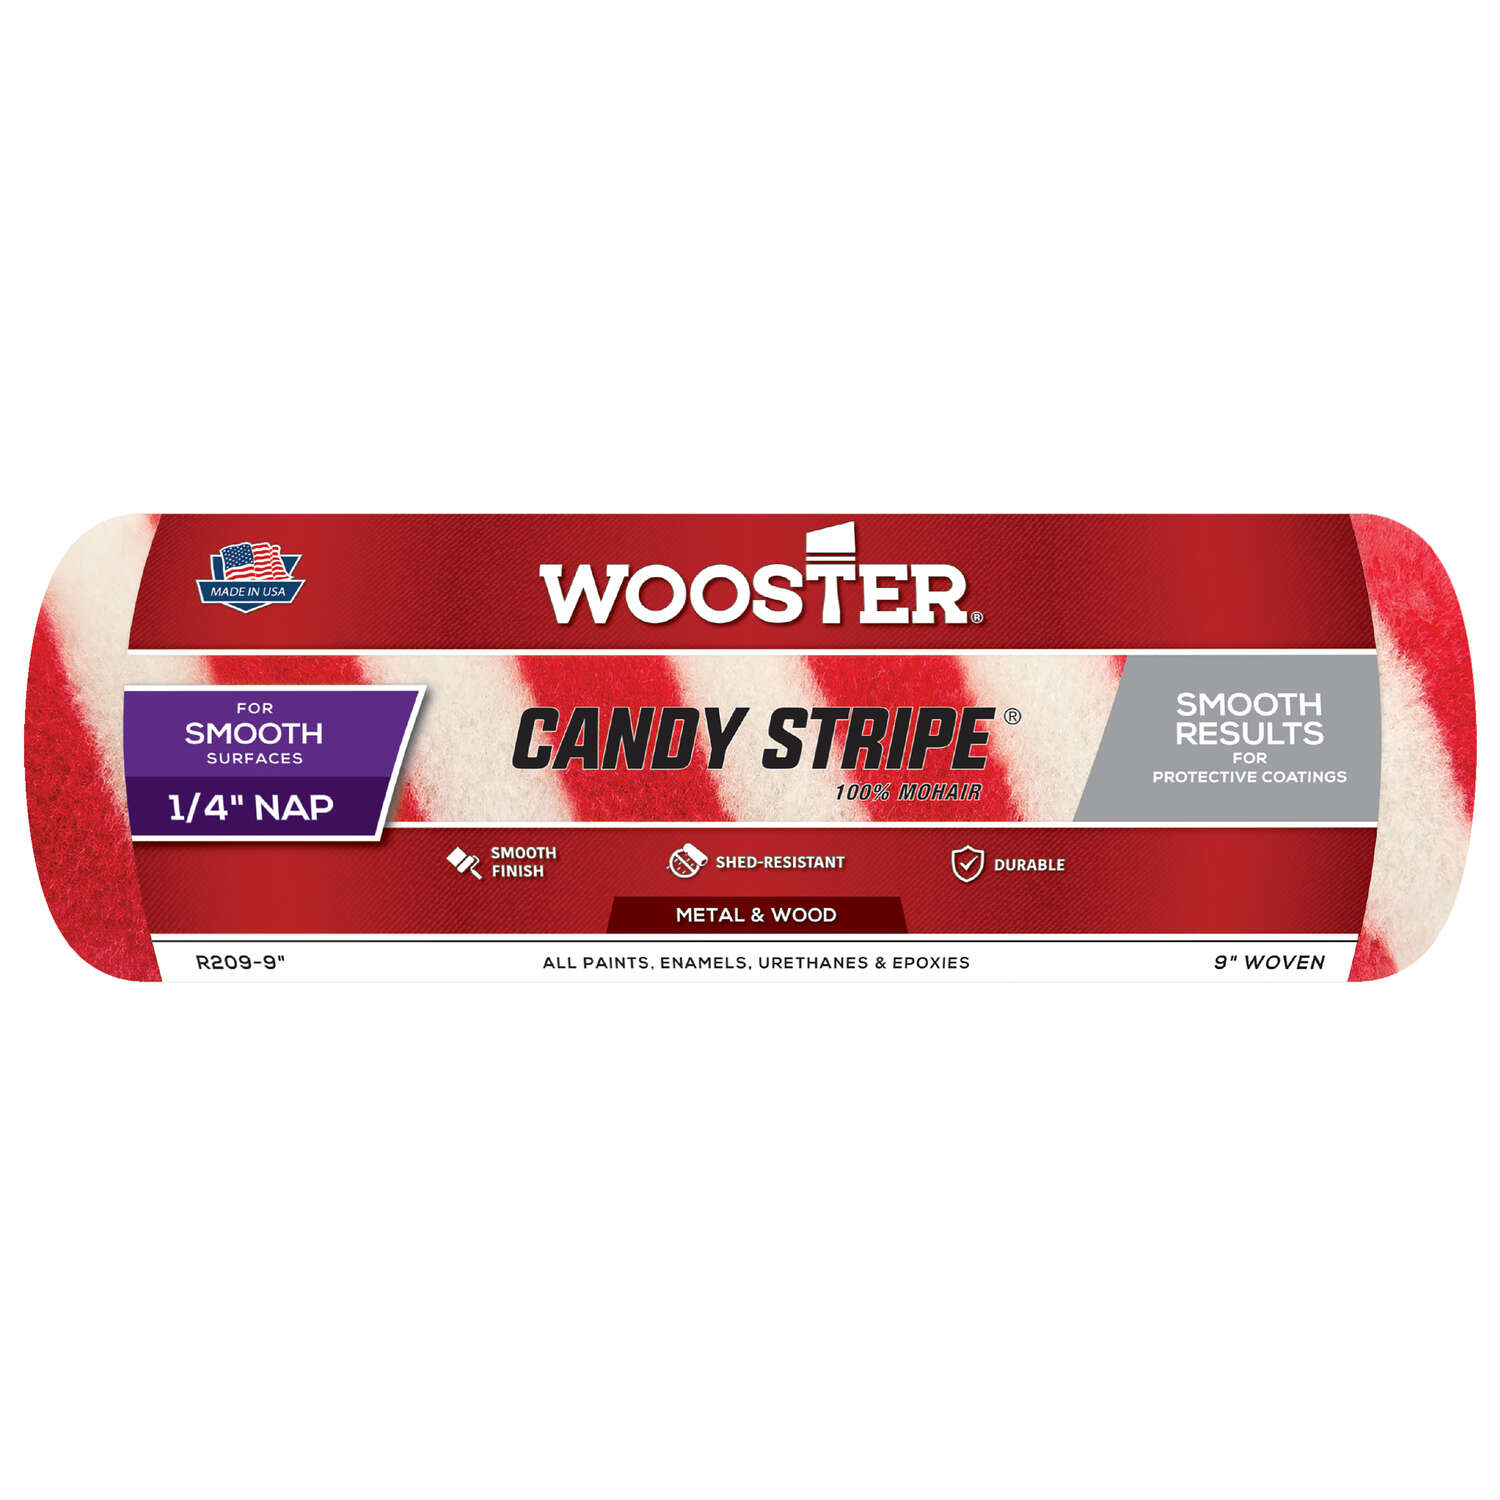 Wooster  Candy Stripe  Mohair Blend  9 in. W x 1/4 in.  Regular  Paint Roller Cover  1 pk